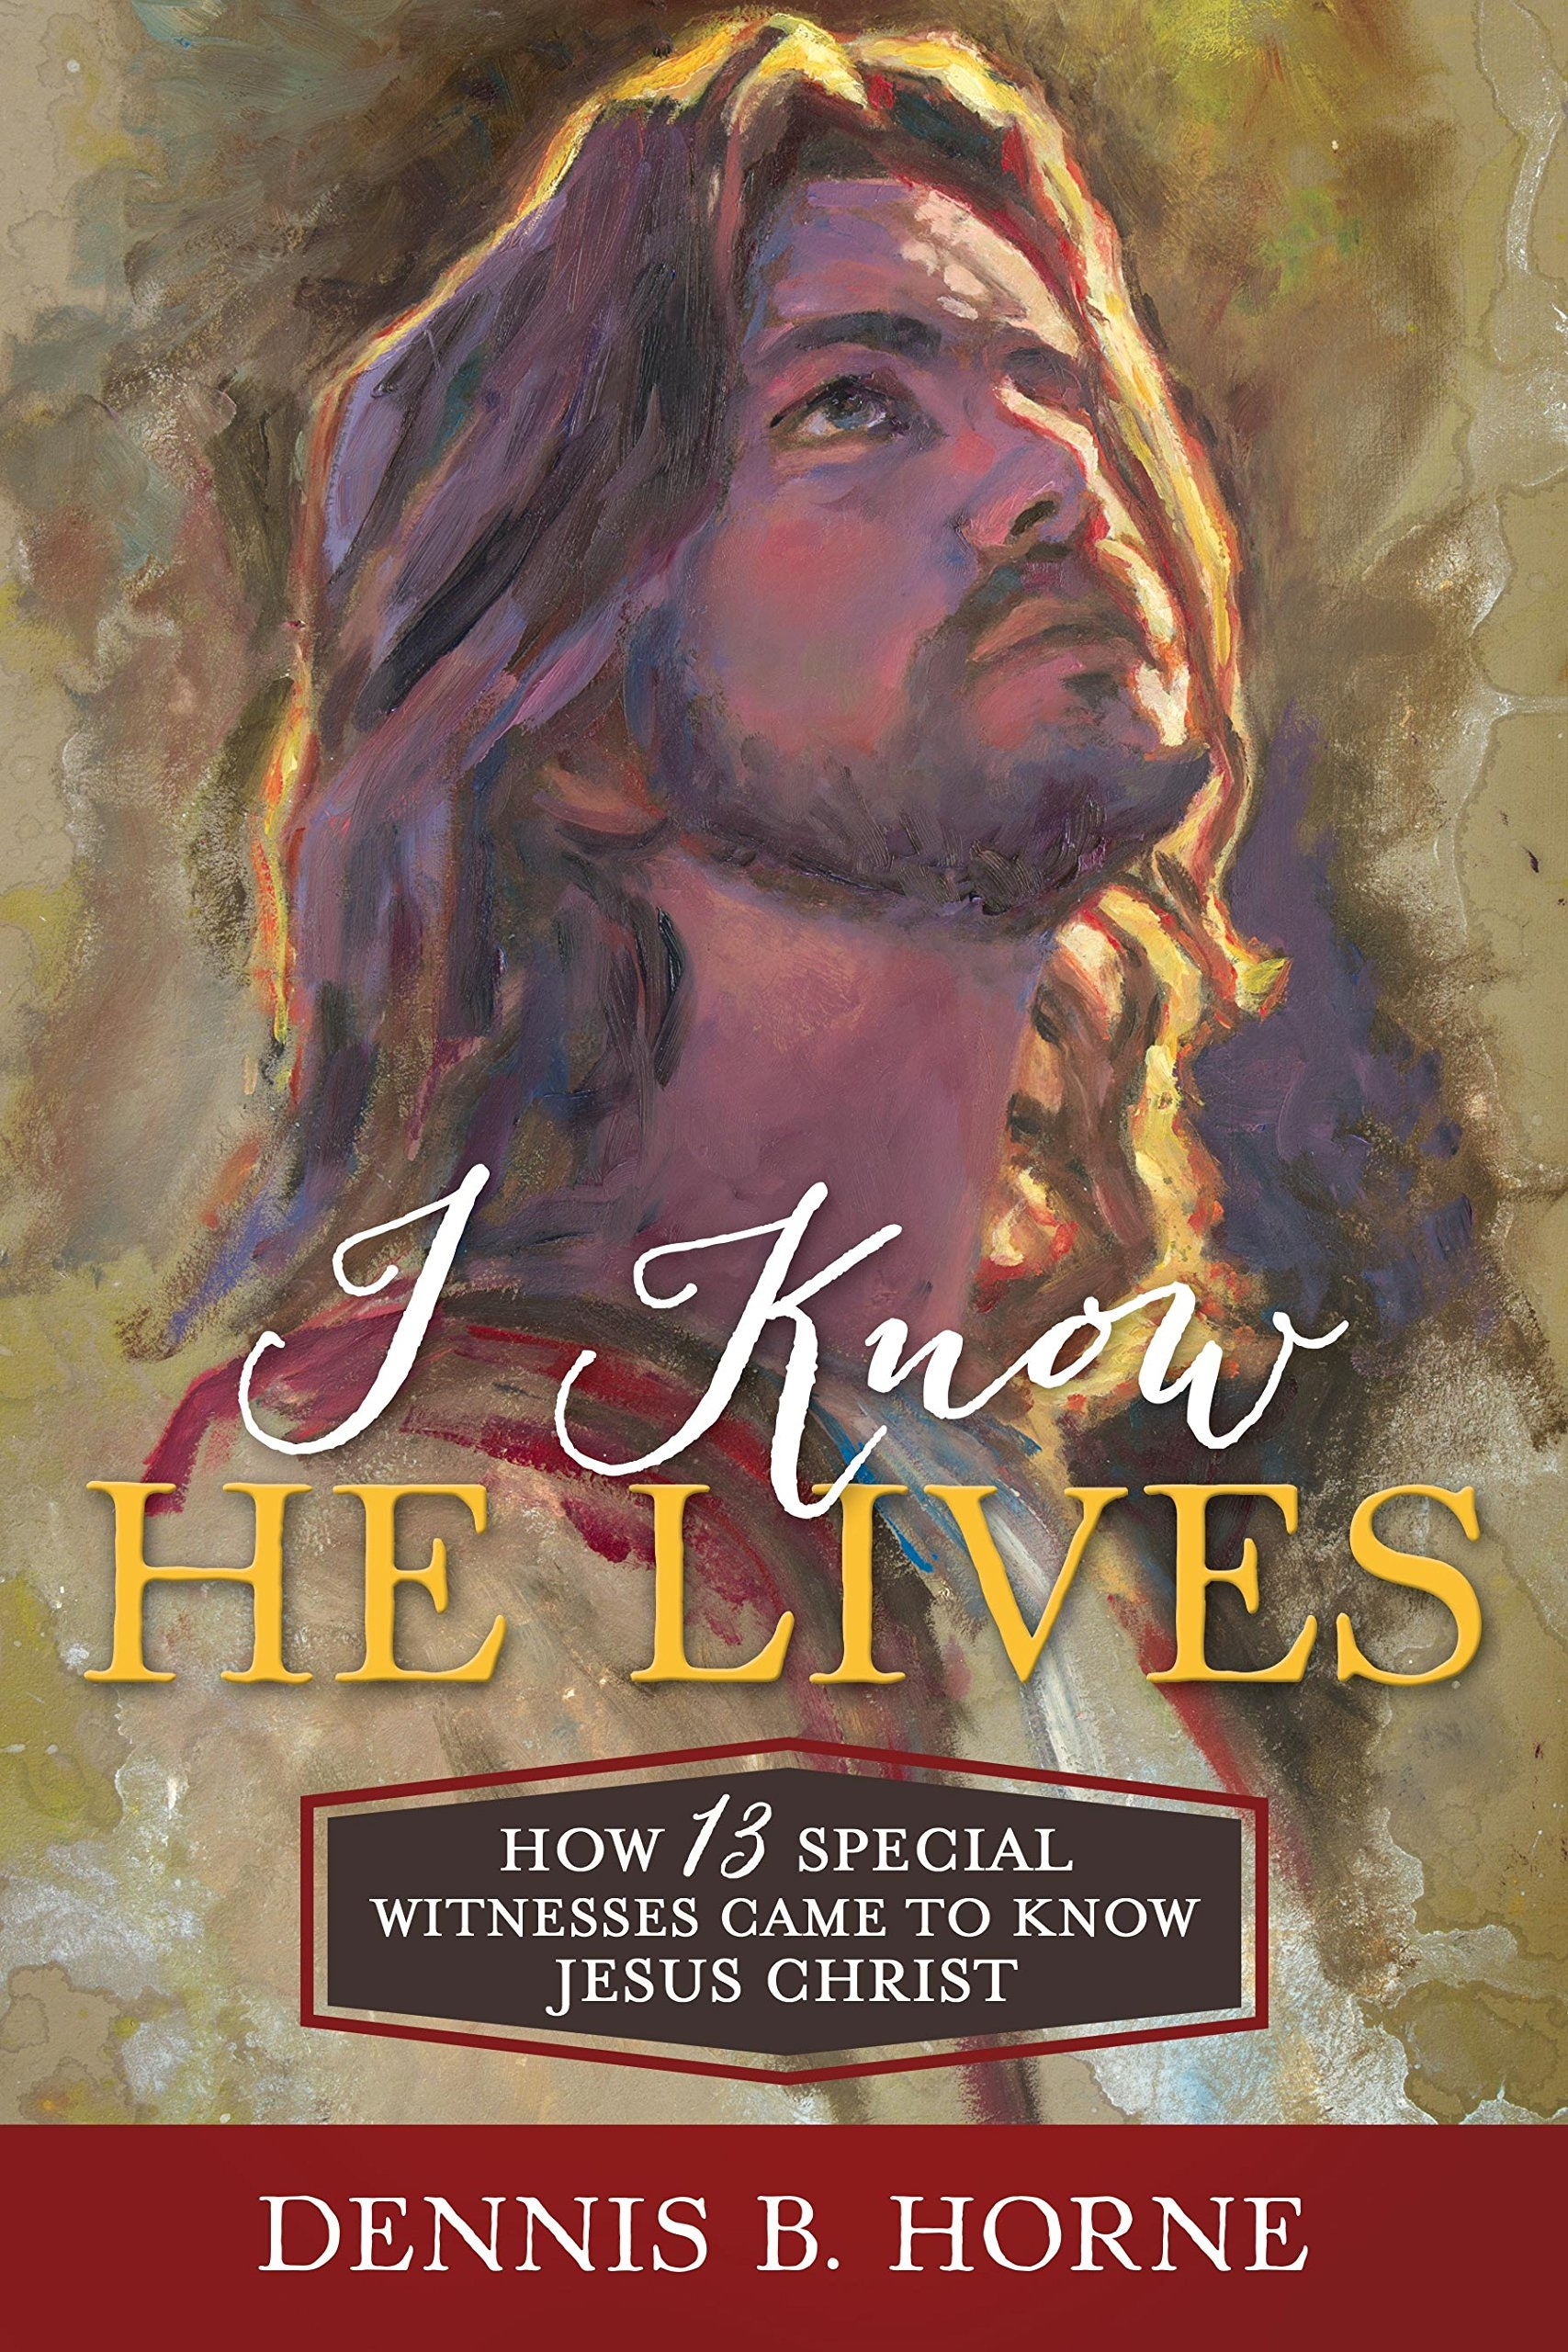 I Know He Lives  How 13 Special Witnesses Came to Know Jesus Christ, Horne, Dennis B.